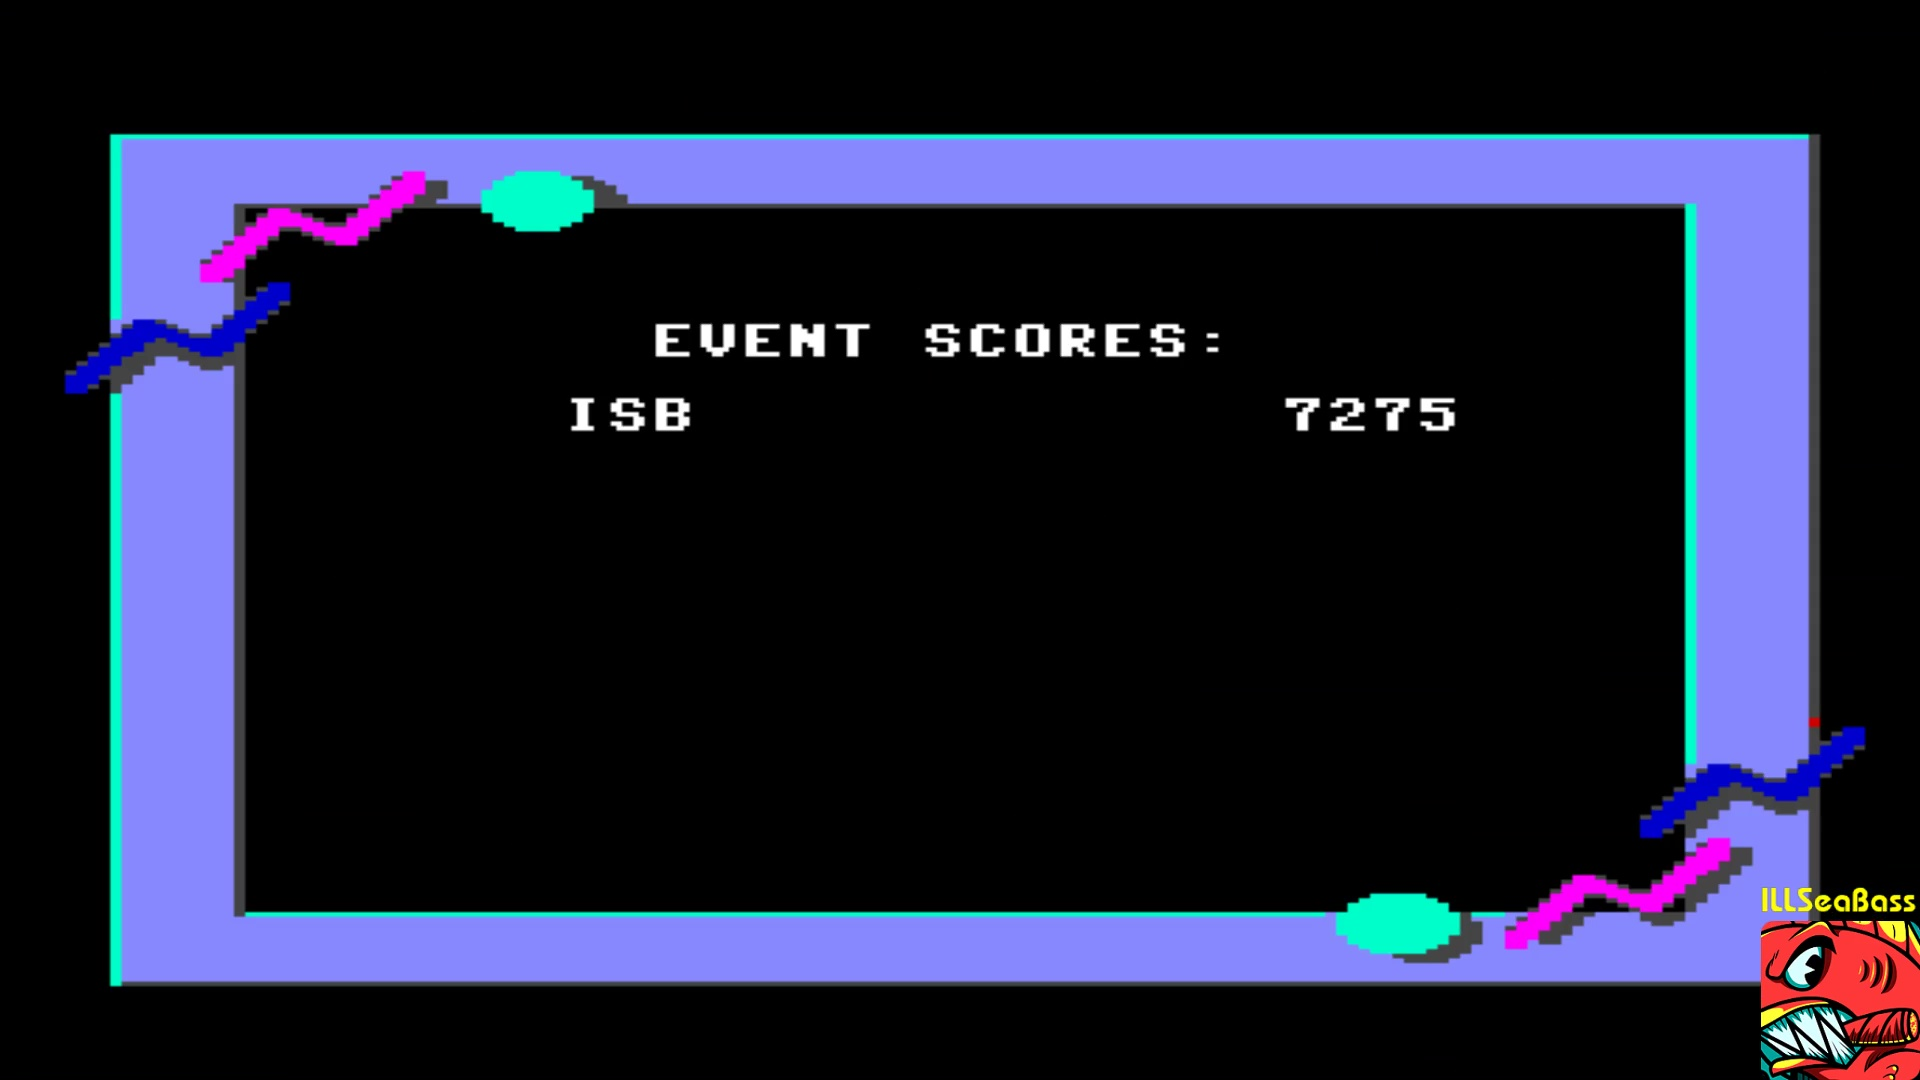 ILLSeaBass: California Games: Half Pipe (Commodore 64 Emulated) 7,275 points on 2018-01-14 20:56:40